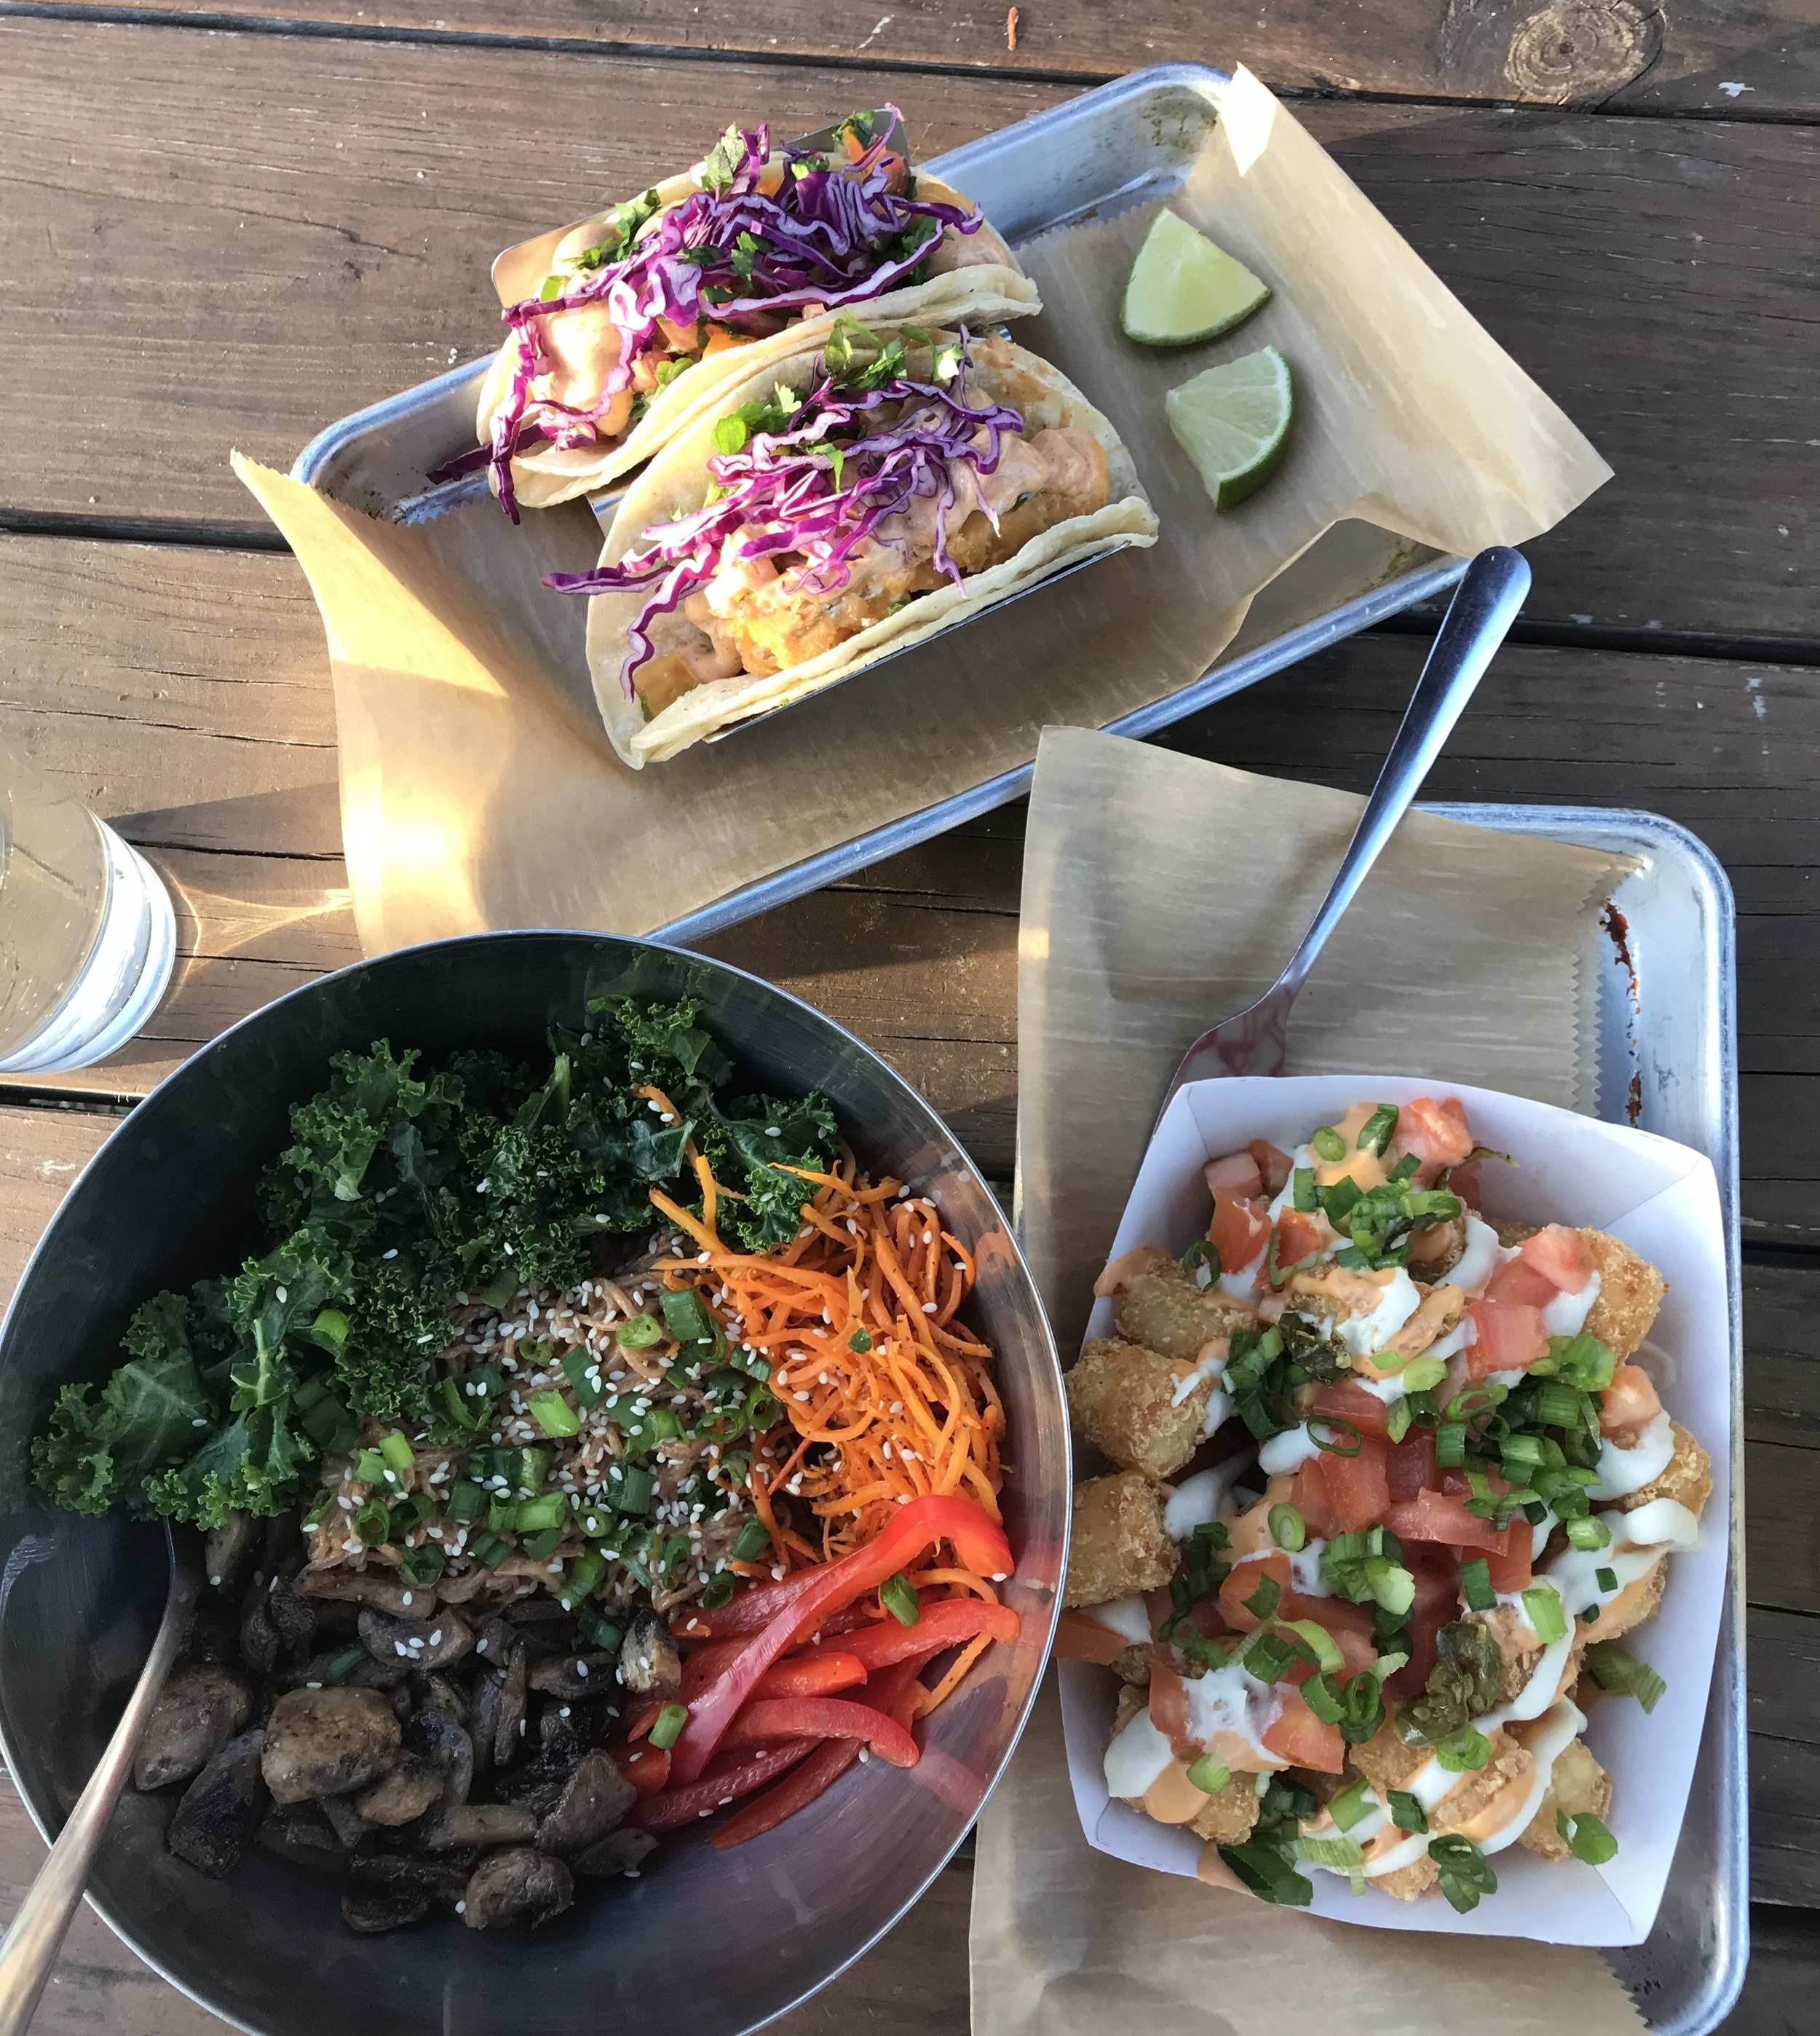 Fish tacos, Korean noodle salad and loaded tater tots from Curia Off the Drag in Gainesville, Florida. Look for all-vegan restaurants in your area for the best vegan food swaps!